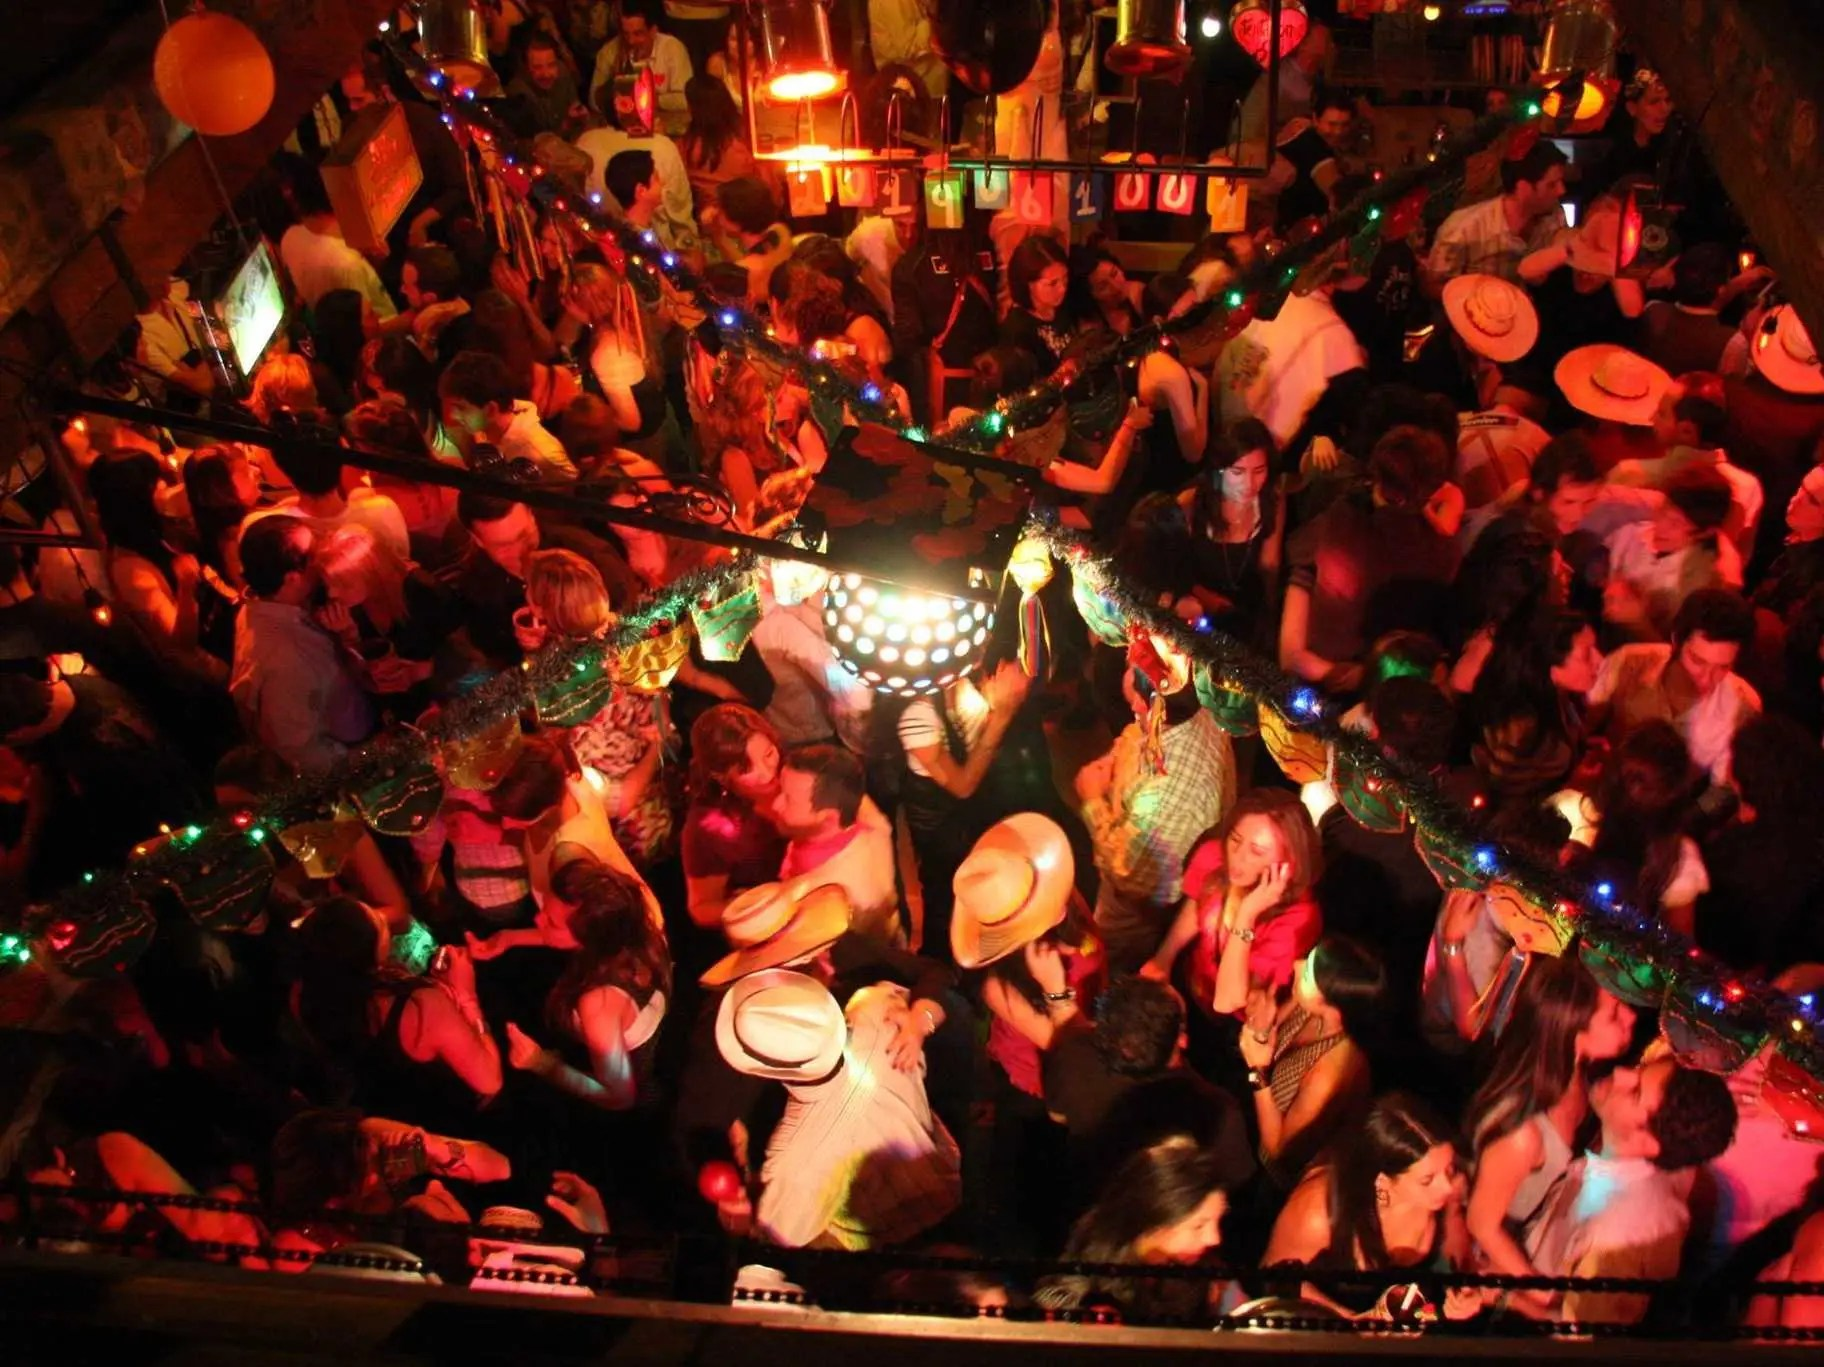 Feast on grilled meats and then dance the night away at Andrés Carne de Res, a massive nightclub in Bogotá, Colombia.